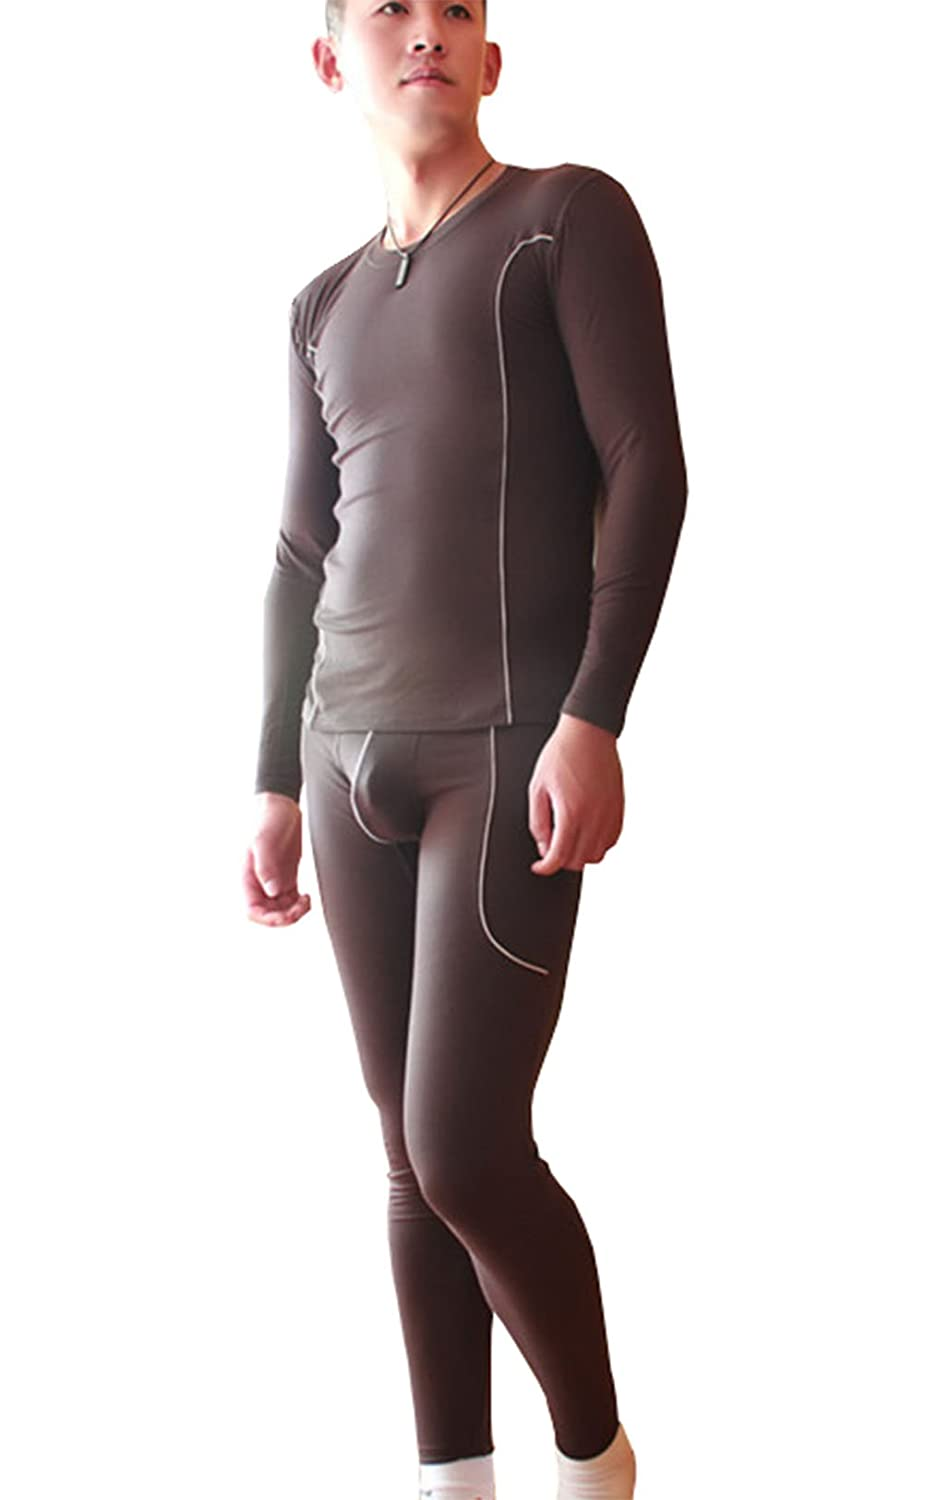 AWEIDS Mens Thin Thermal Underwear Sets Soft Long Sleeve Vest Top And Long Jhons Bottom